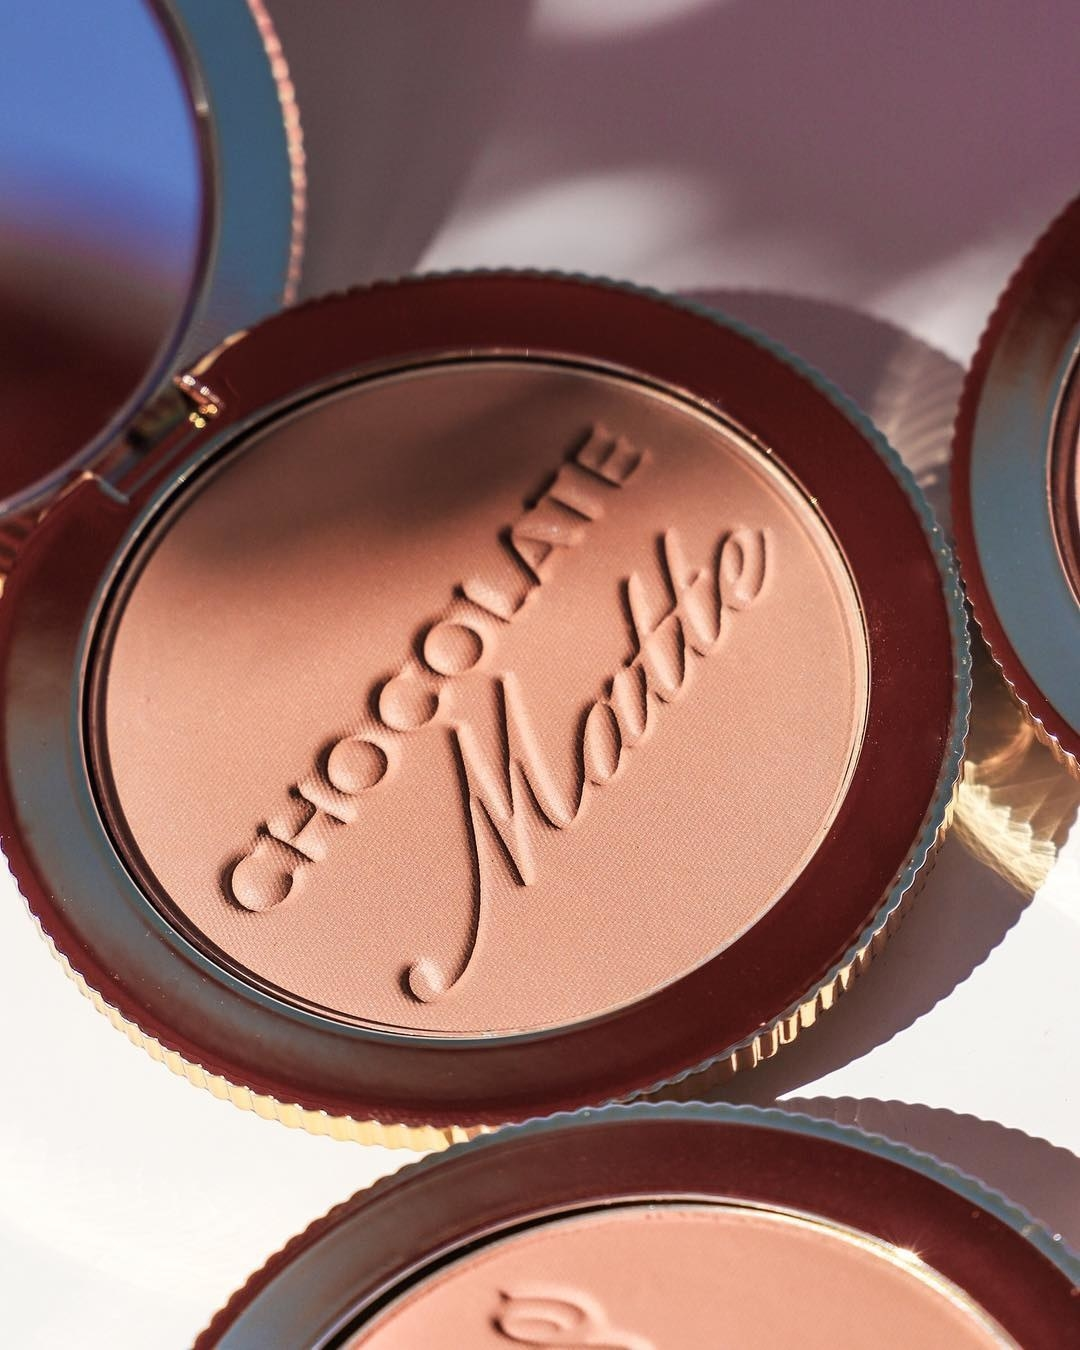 An open bronzer that says chocolate matte